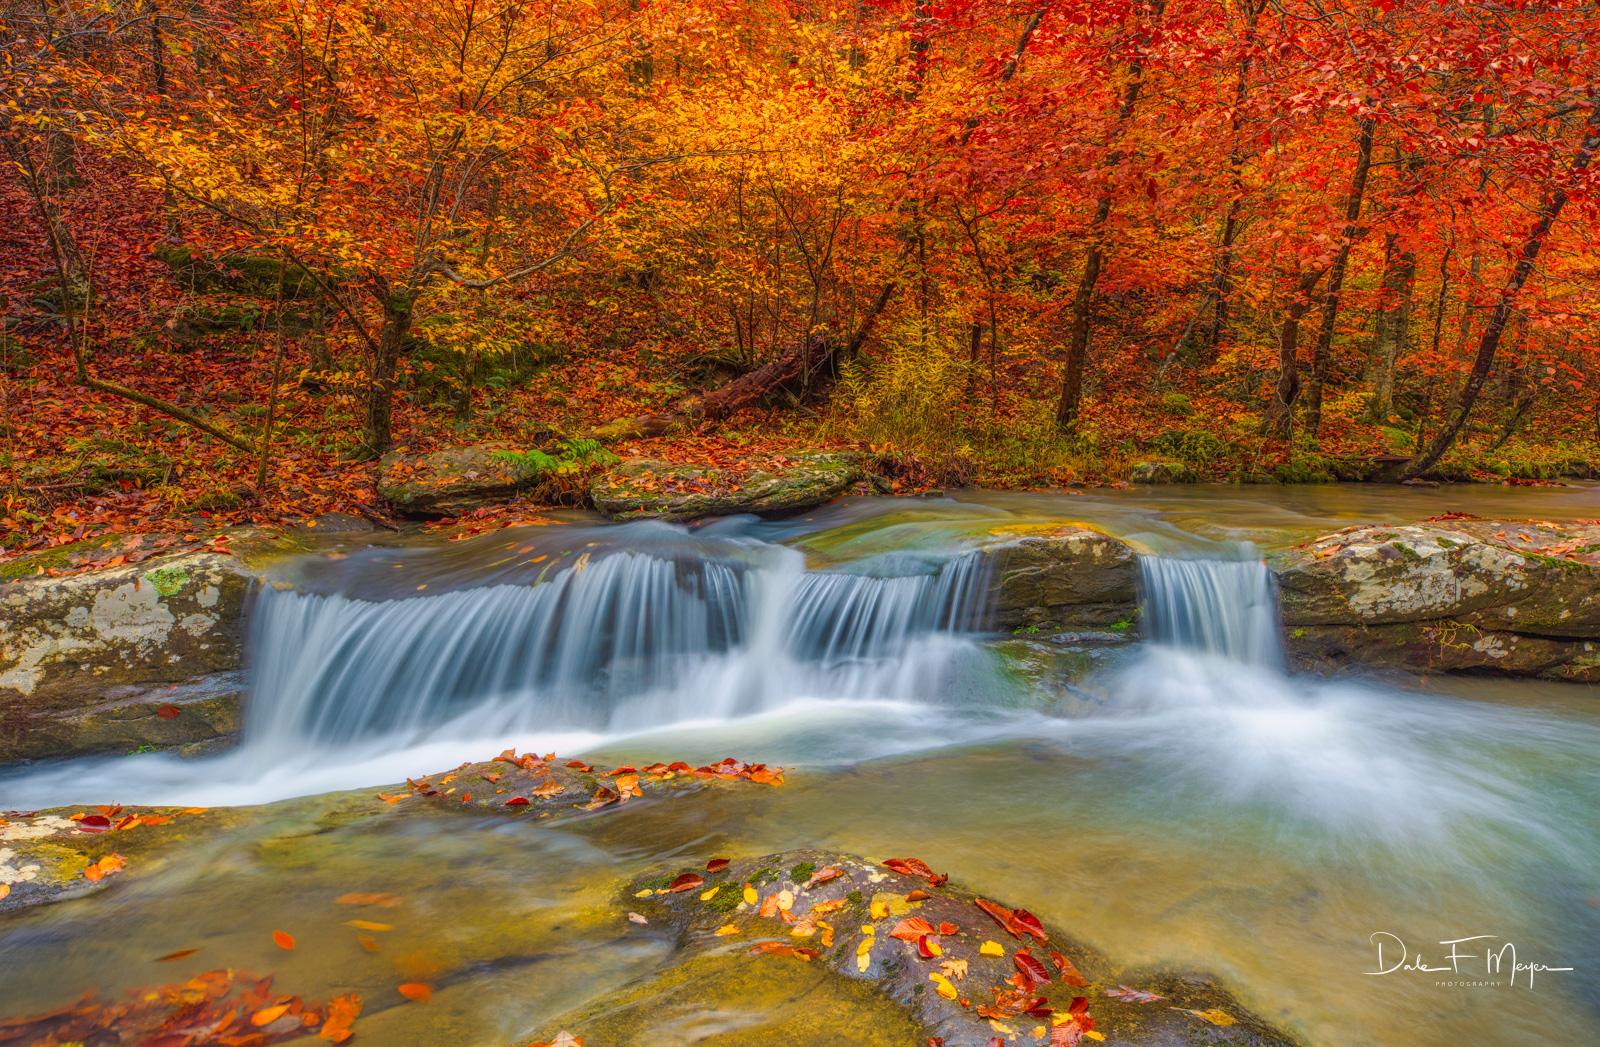 A rare and fleeting combination of beautiful Fall color and water flow on Whitaker Creek in the Upper Buffalo Wilderness Area...